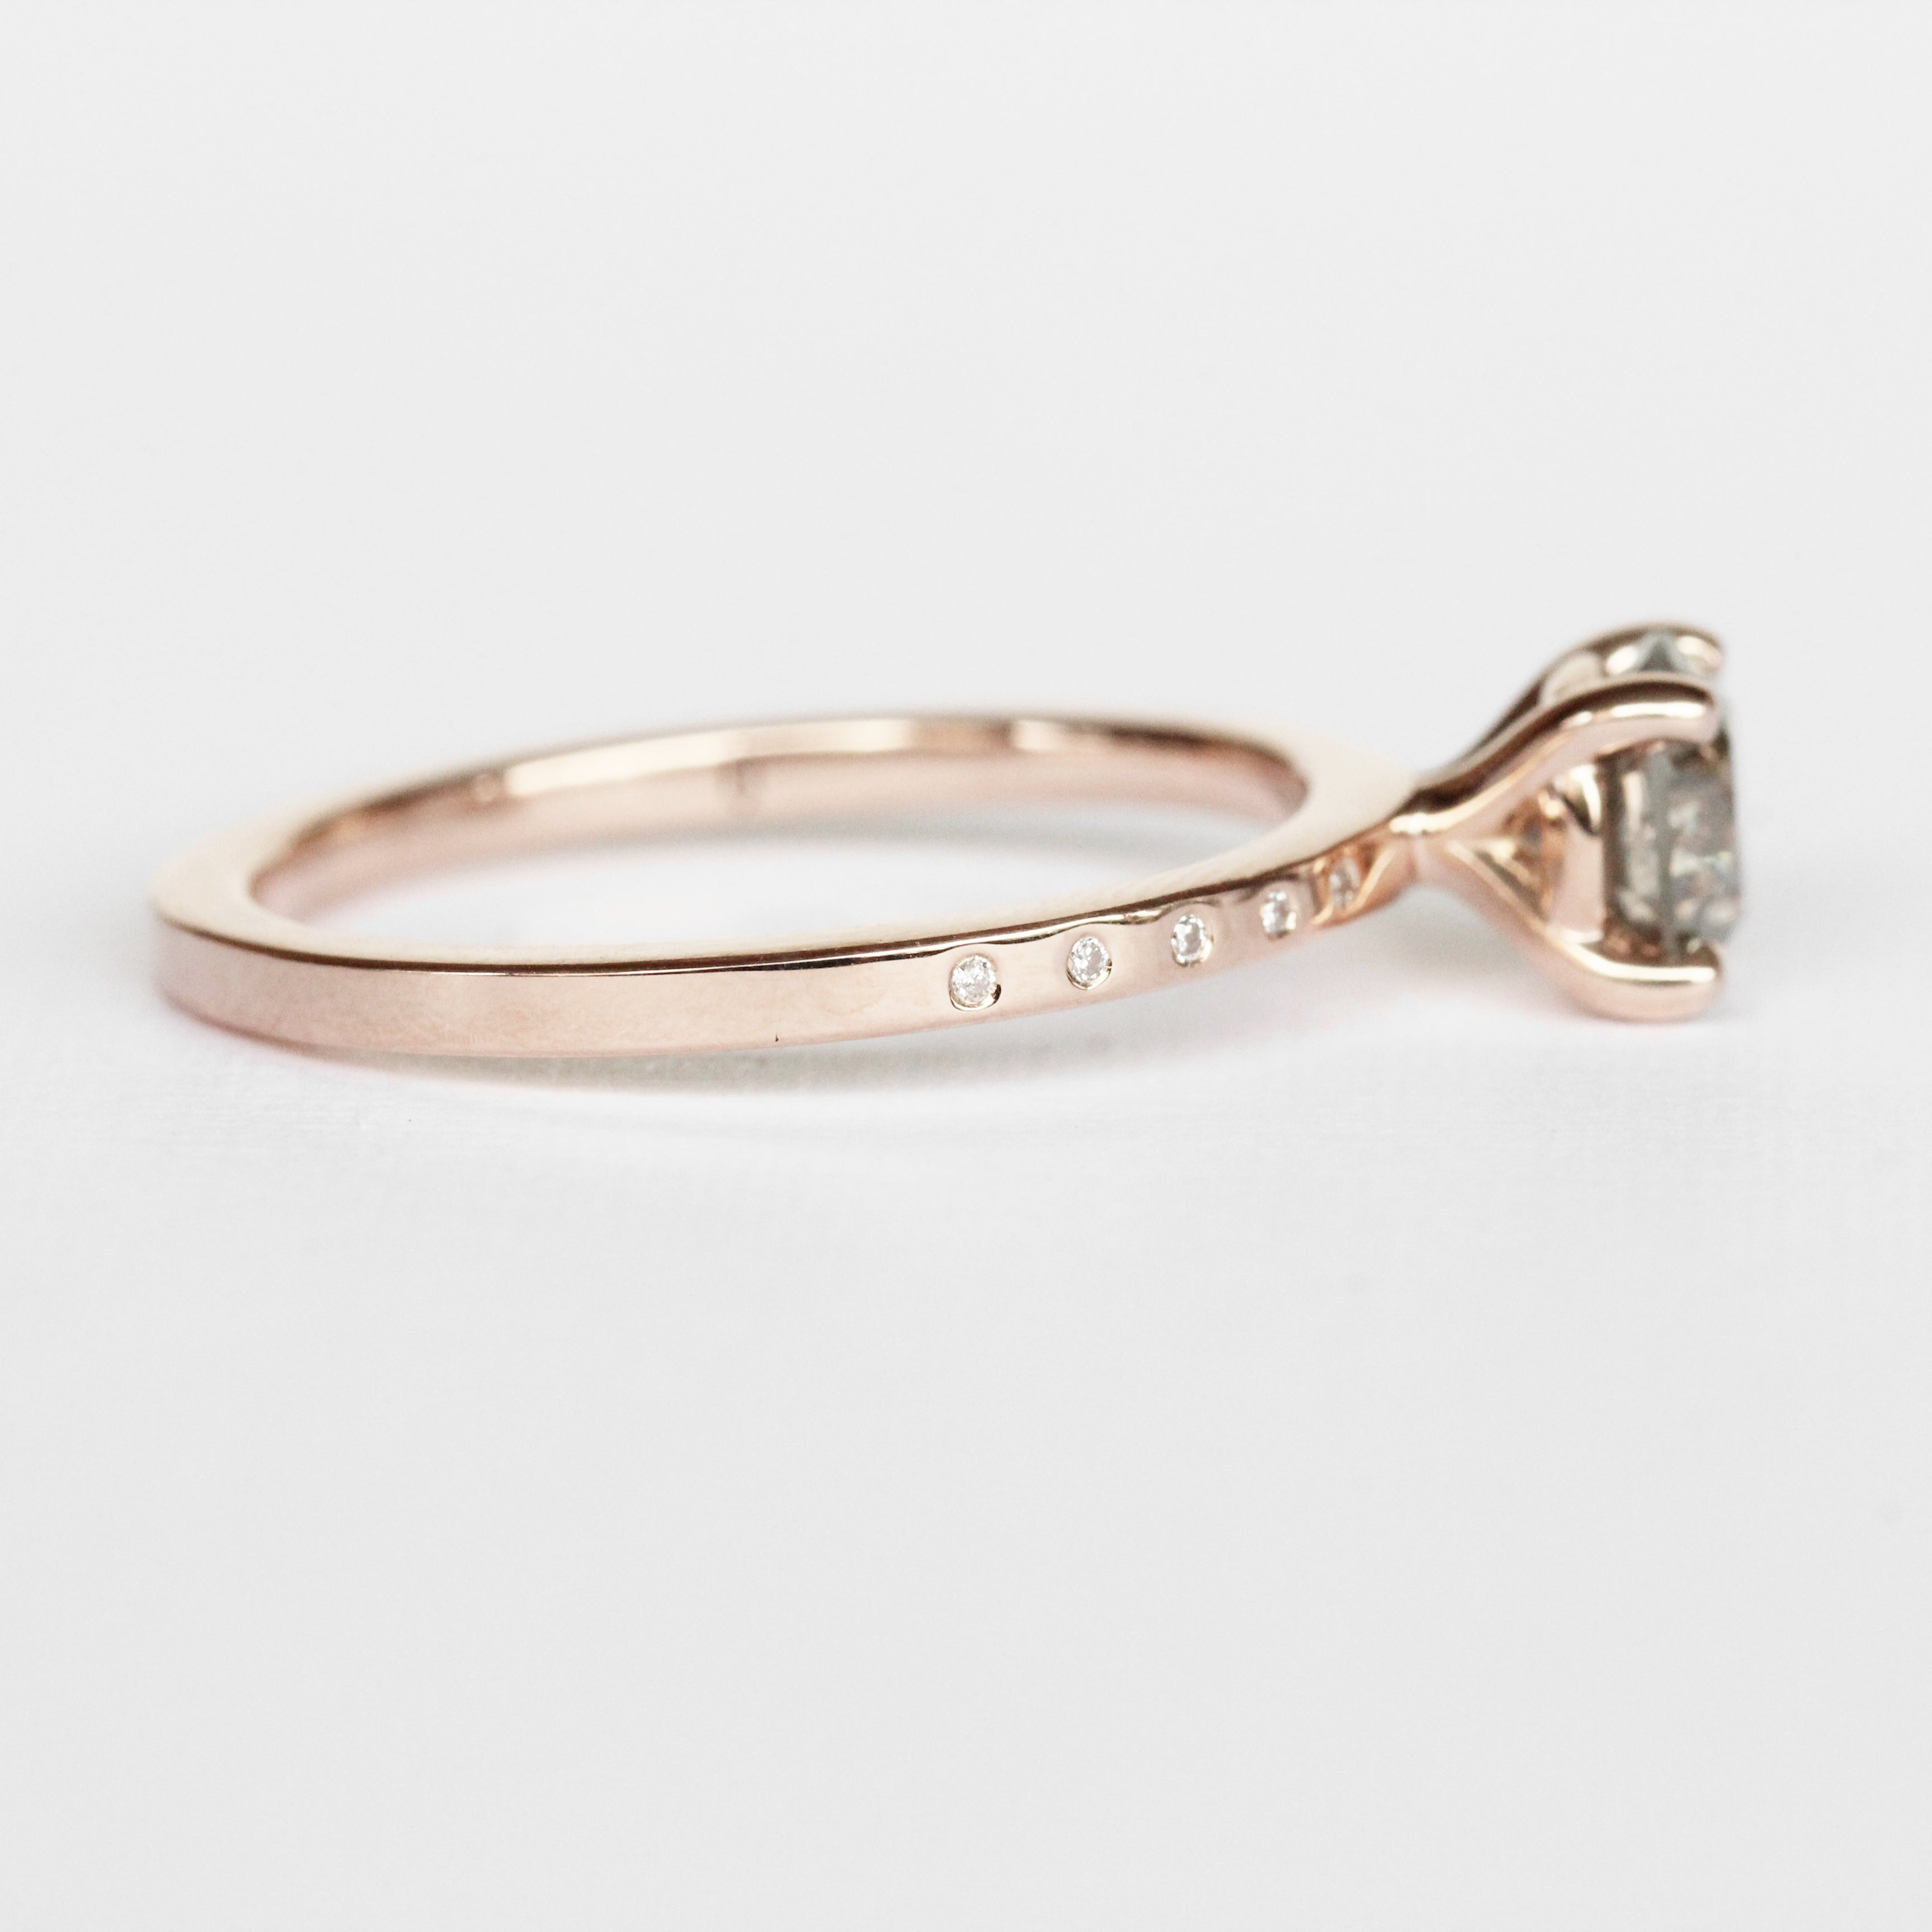 Heath Ring with an .80 ct Celestial Diamond in 14k Rose Gold - Ready to Size and Ship - Salt & Pepper Celestial Diamond Engagement Rings and Wedding Bands  by Midwinter Co.